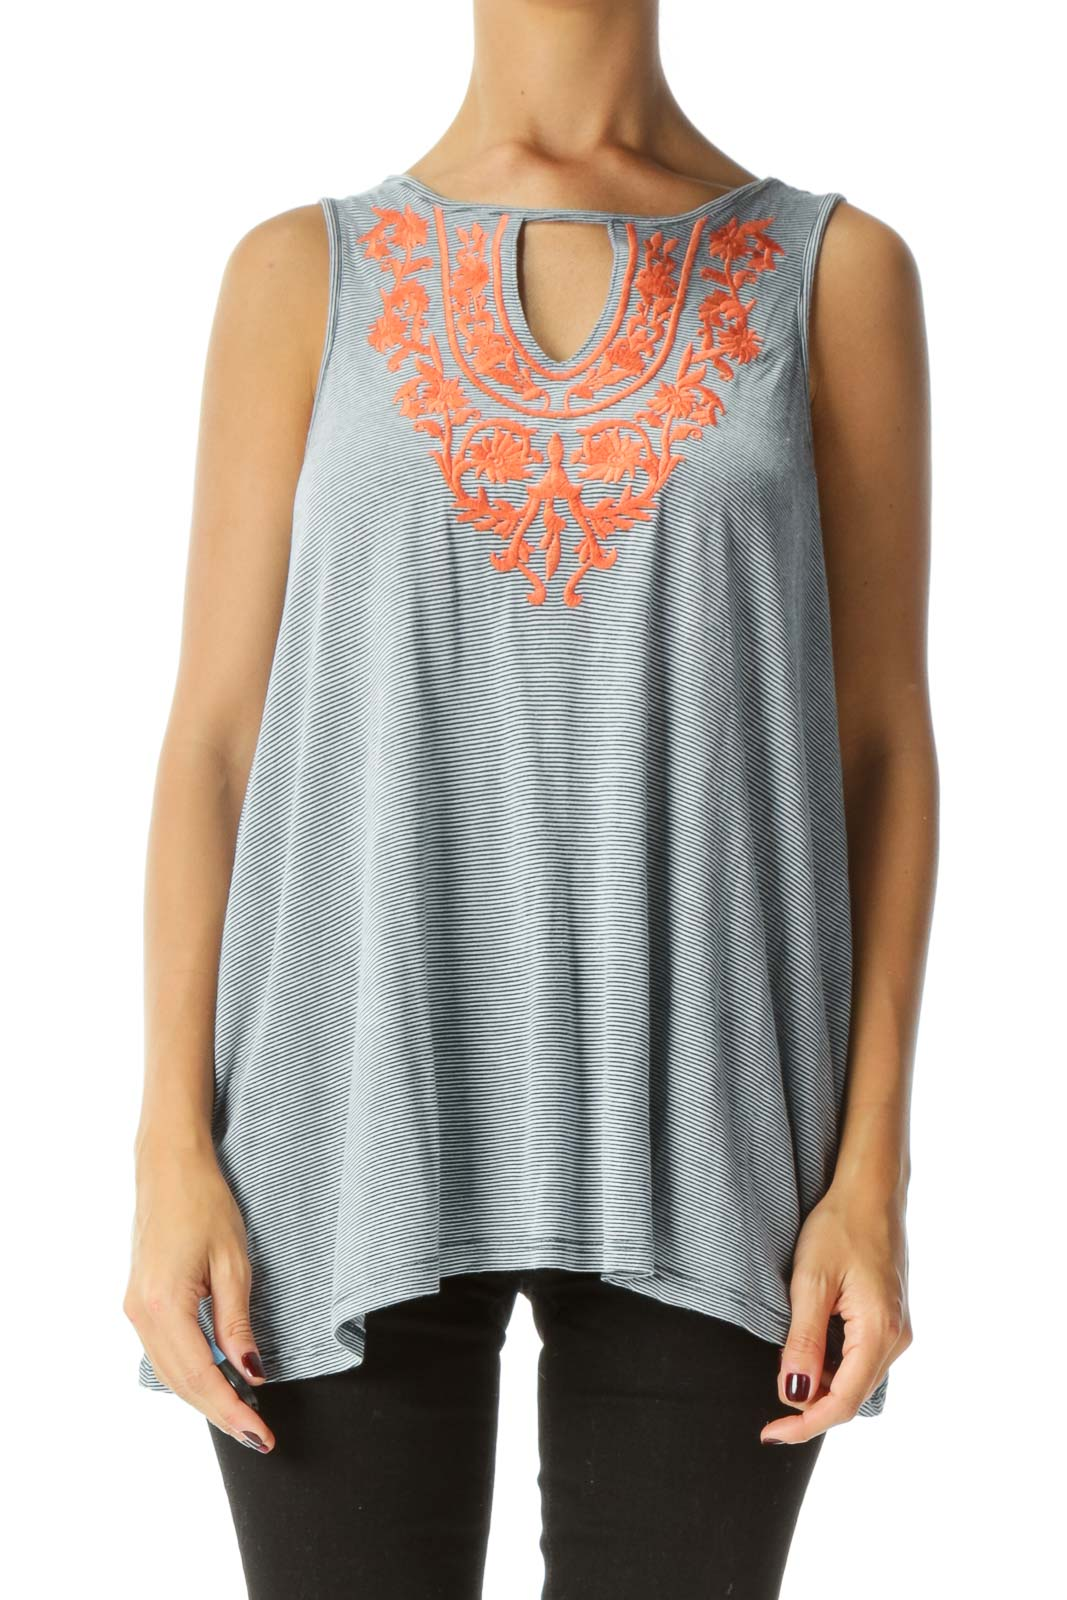 Blue White Orange Embroidery Keyhole Jersey Knit Tank Top Front